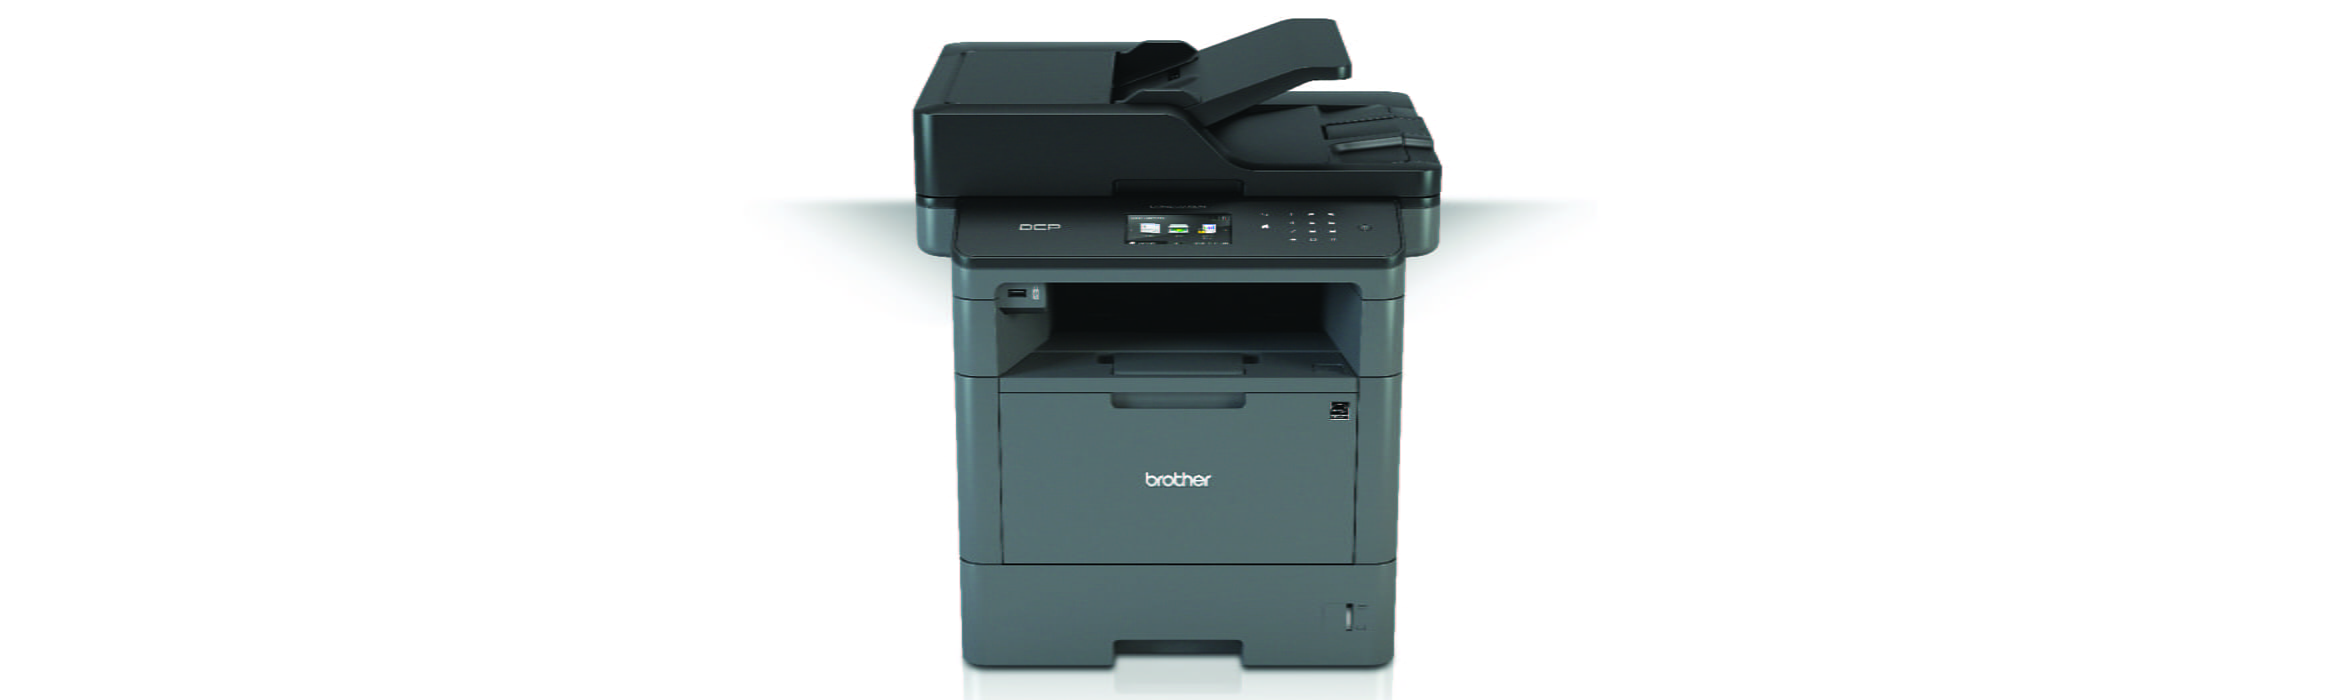 Brother DCP-L5500DN printer